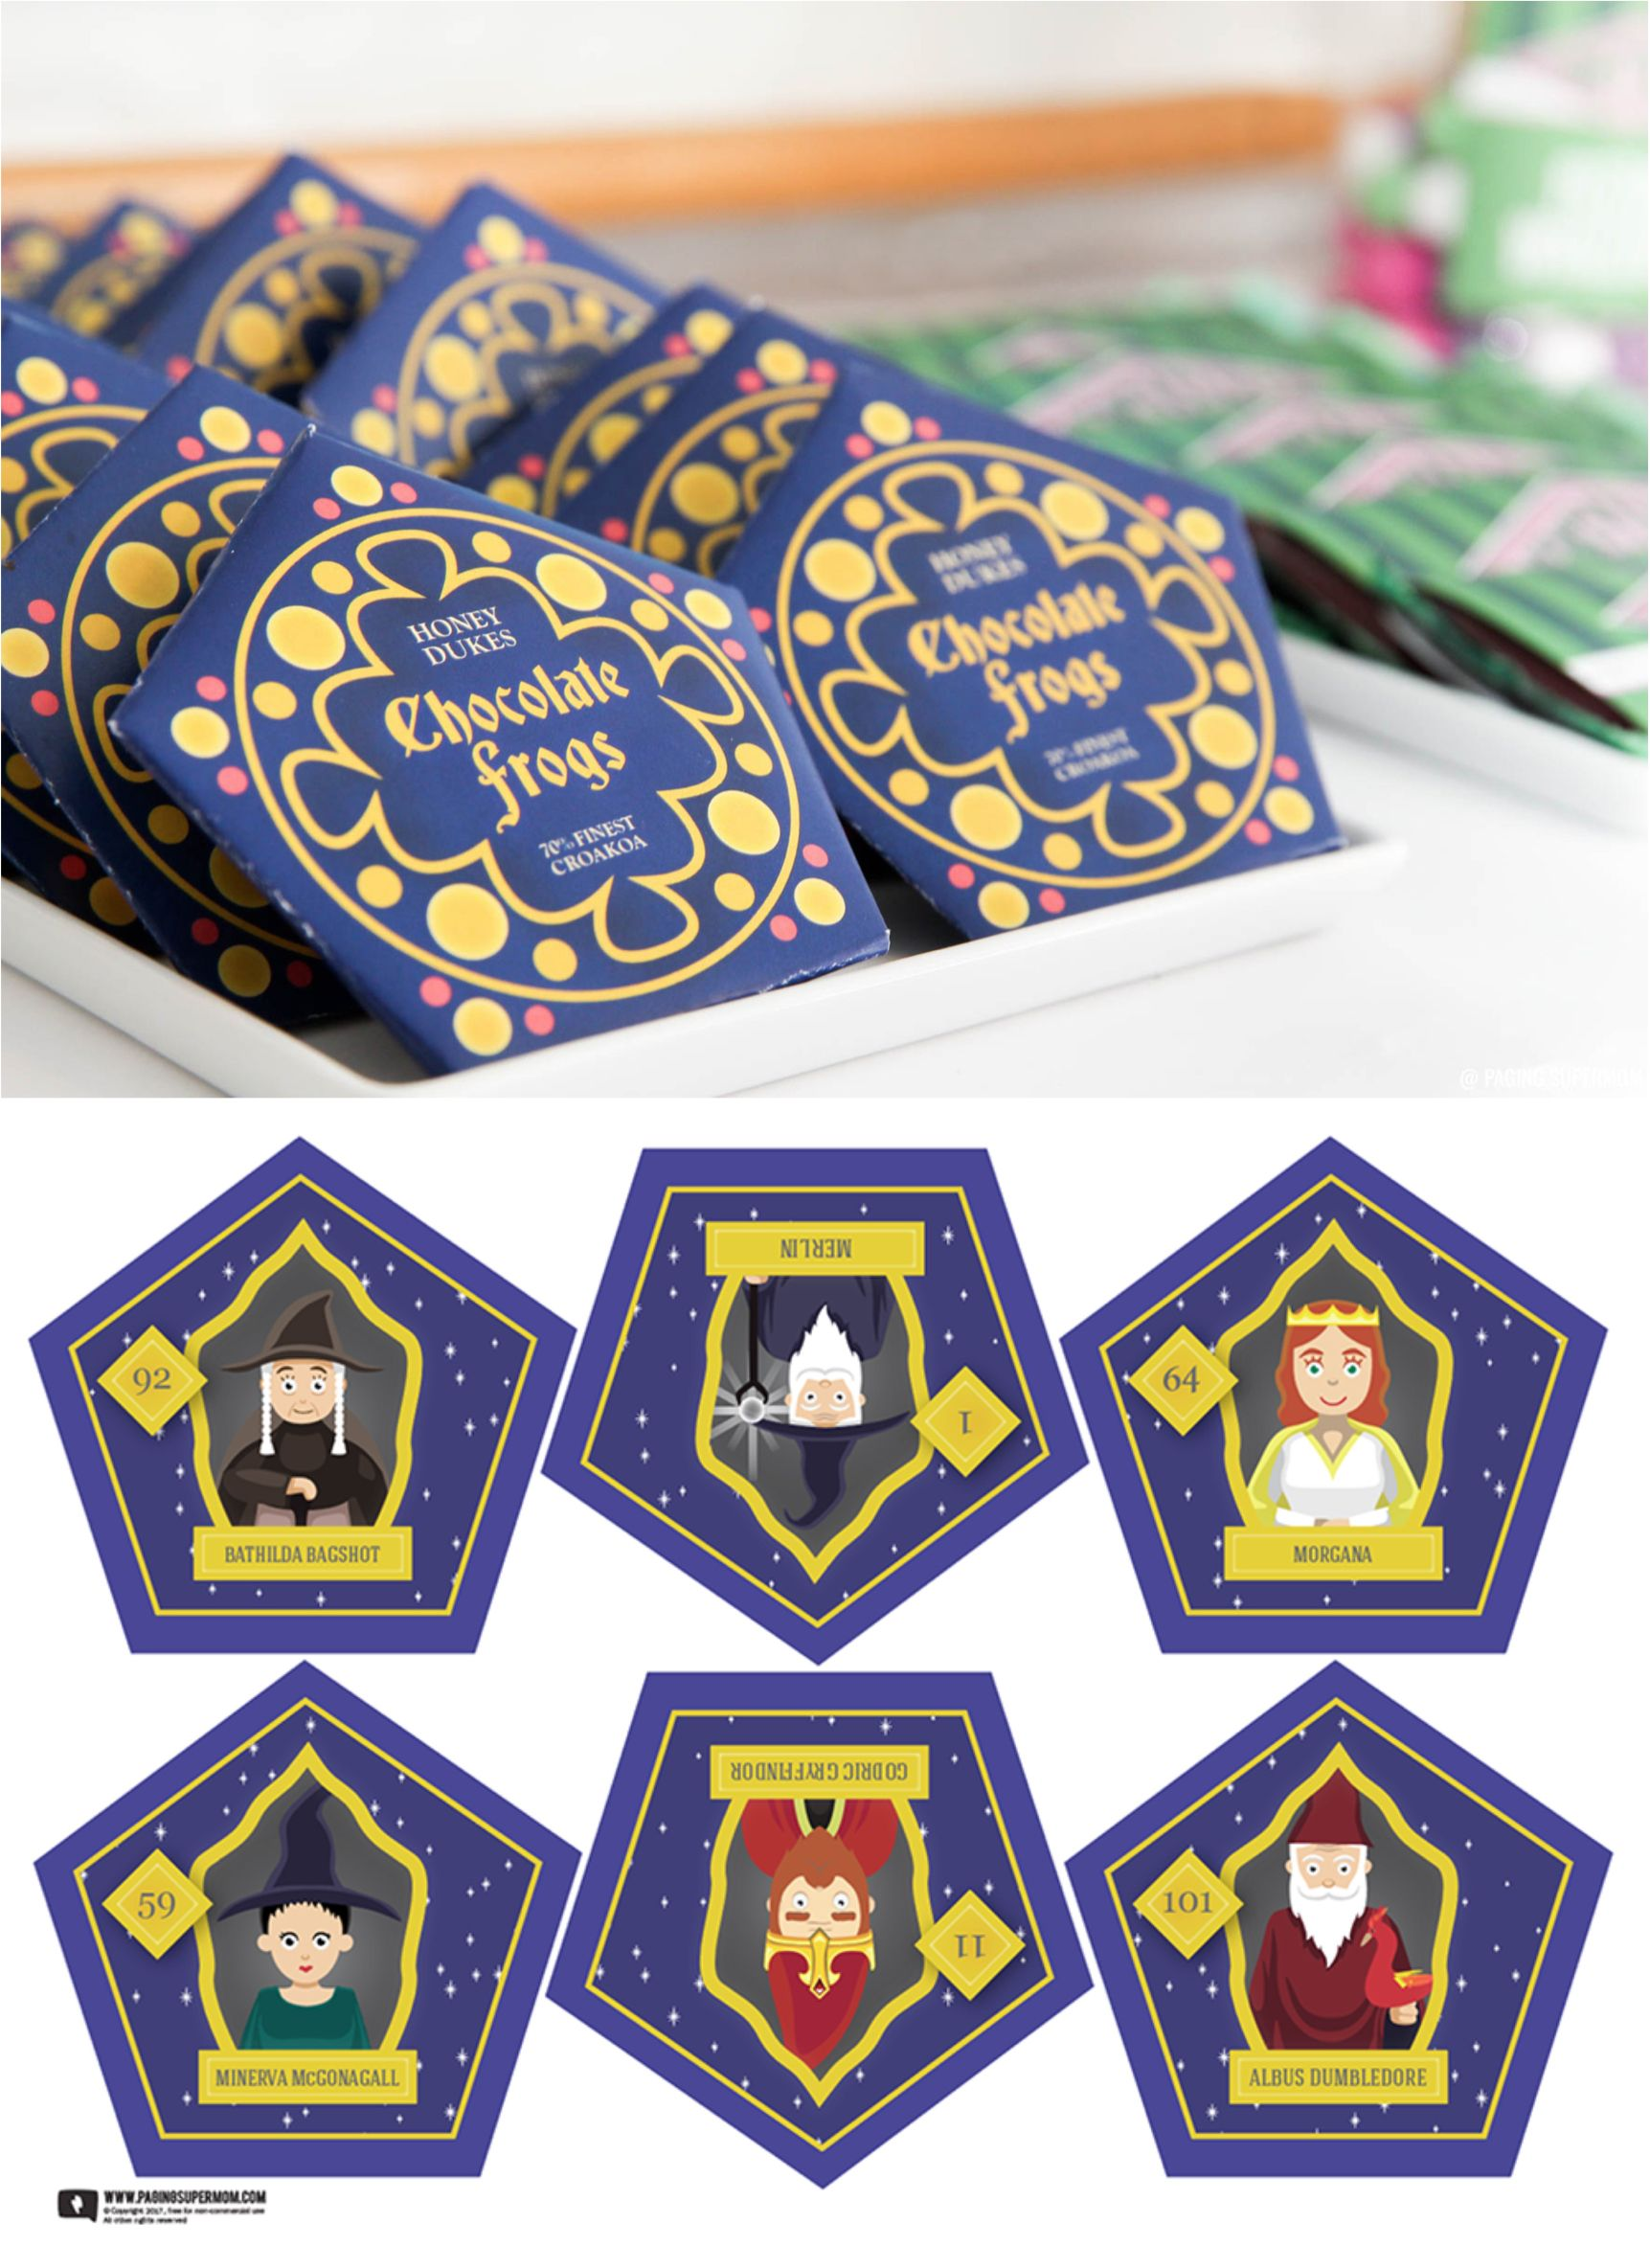 Harry Potter Chocolate Frogs Free Printable Template For Diy Honeydukes Chocolate Frogs Harry Potter Free Harry Potter Printables Harry Potter Bday